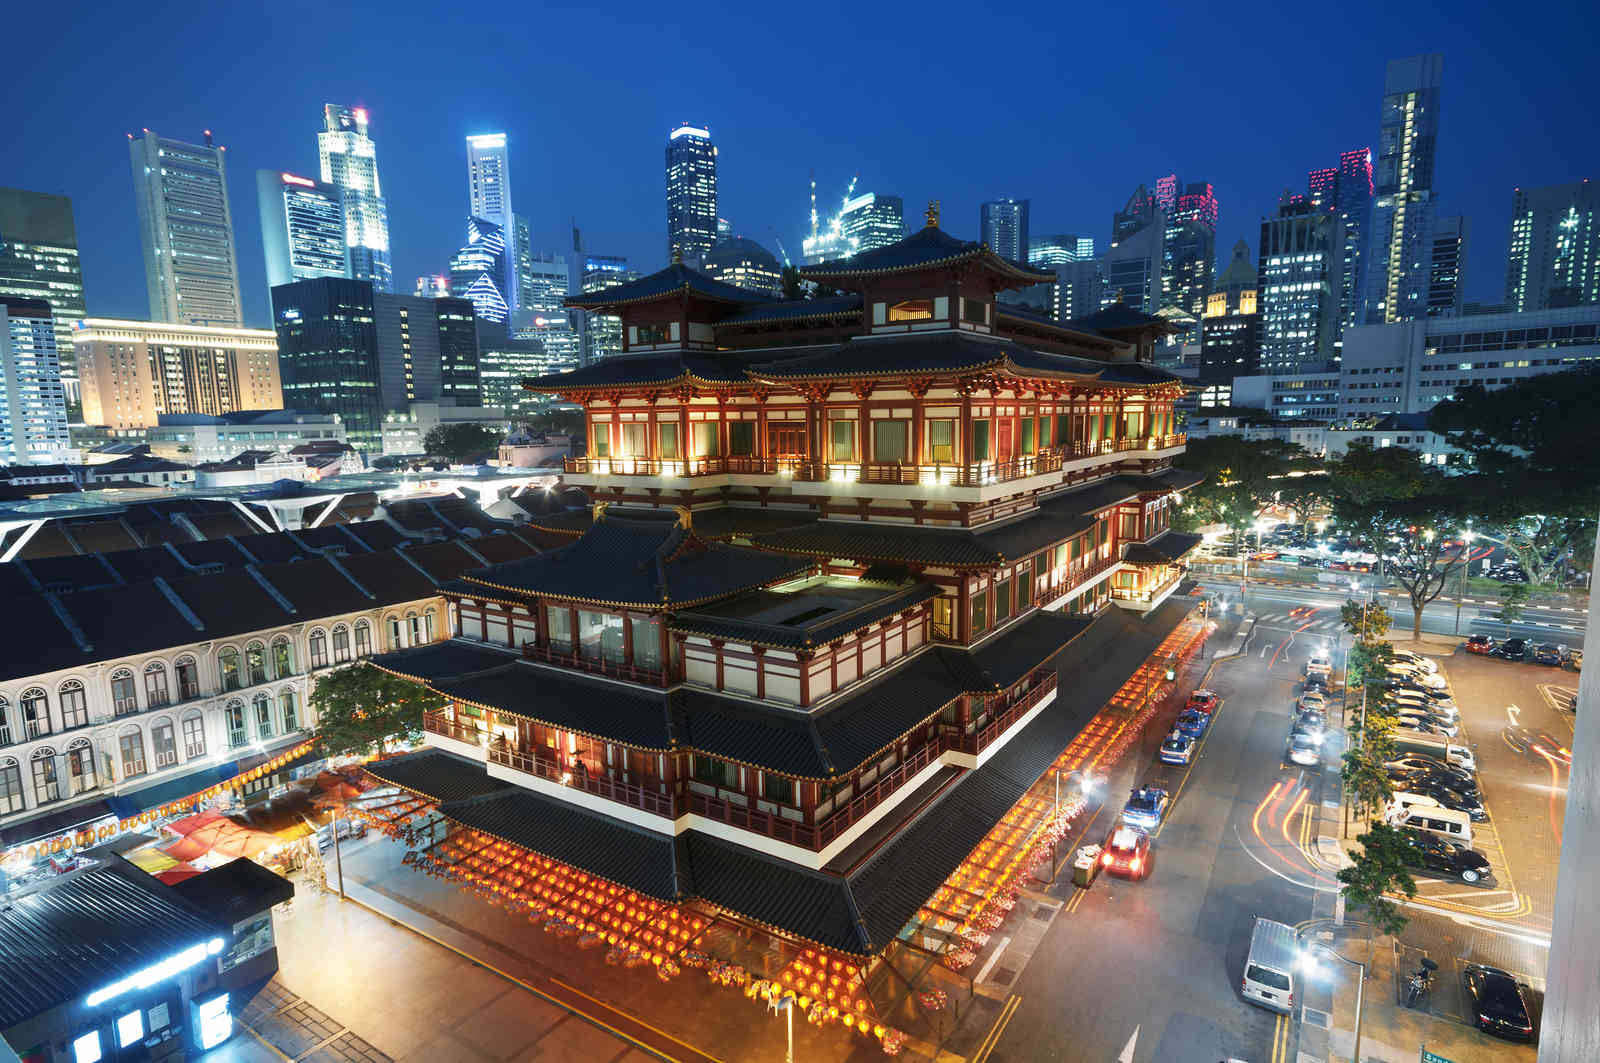 Buddha Toothe Relic Temple